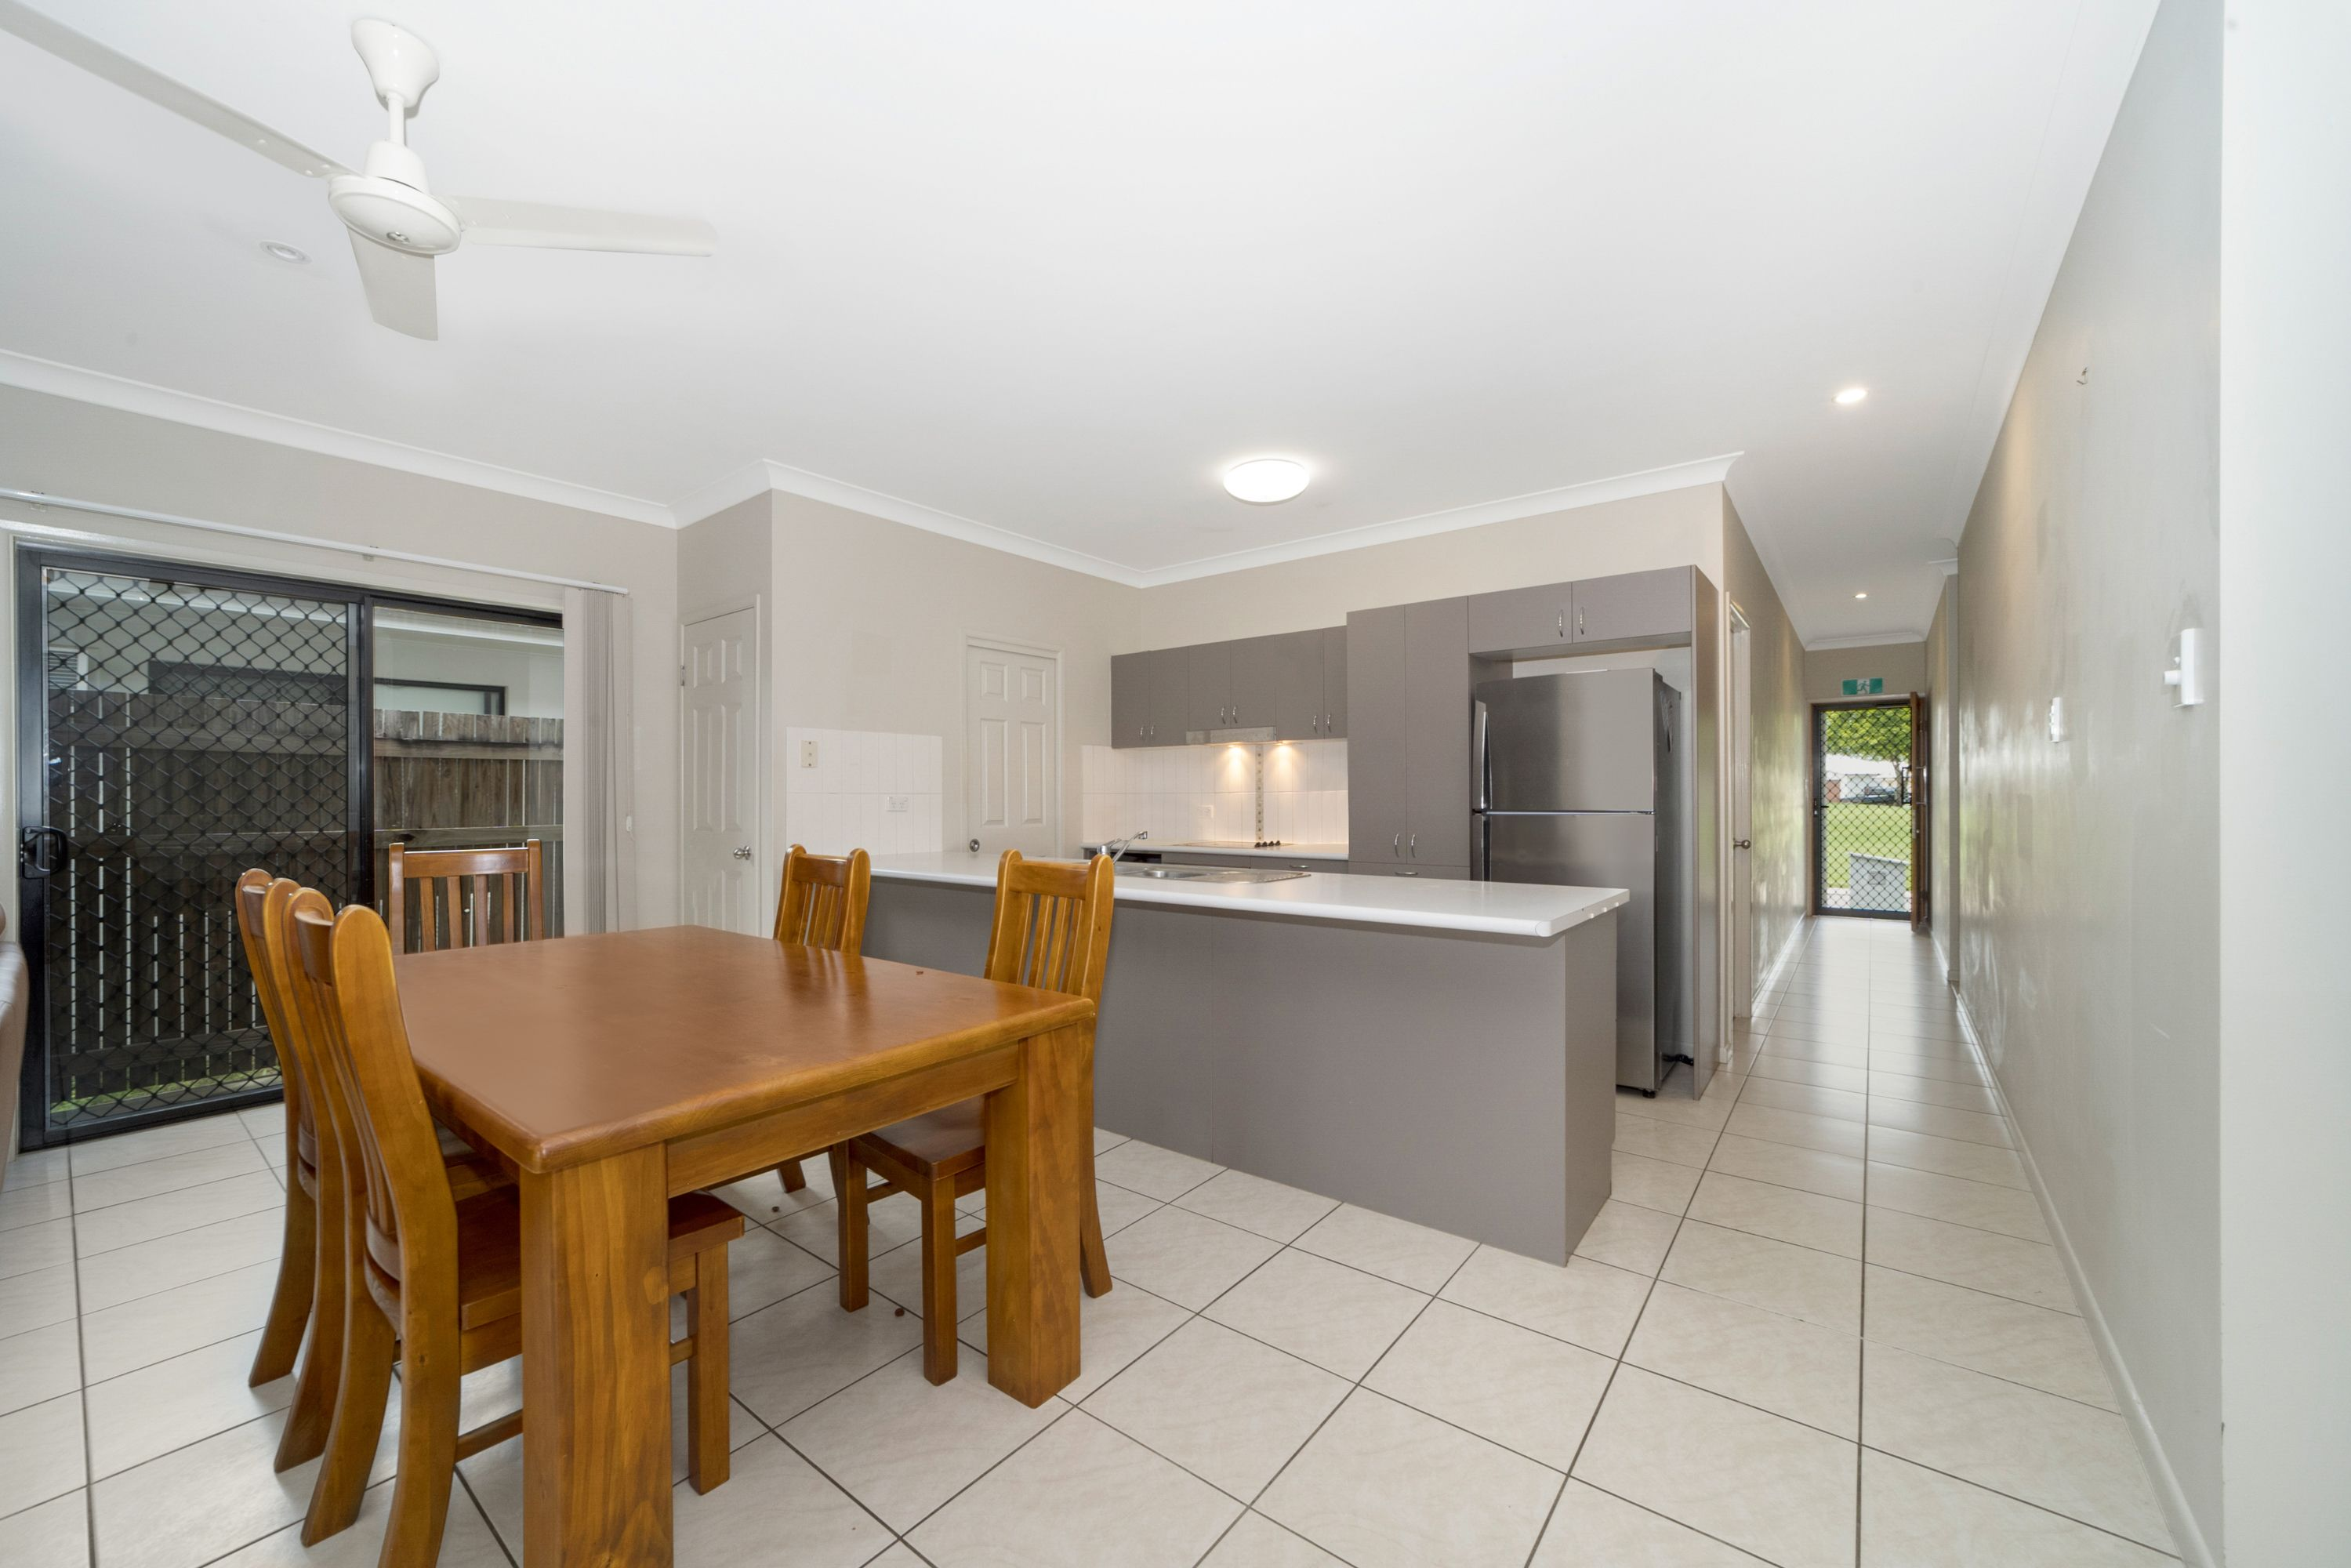 79 Tangerine Way, Kirwan, QLD 4817